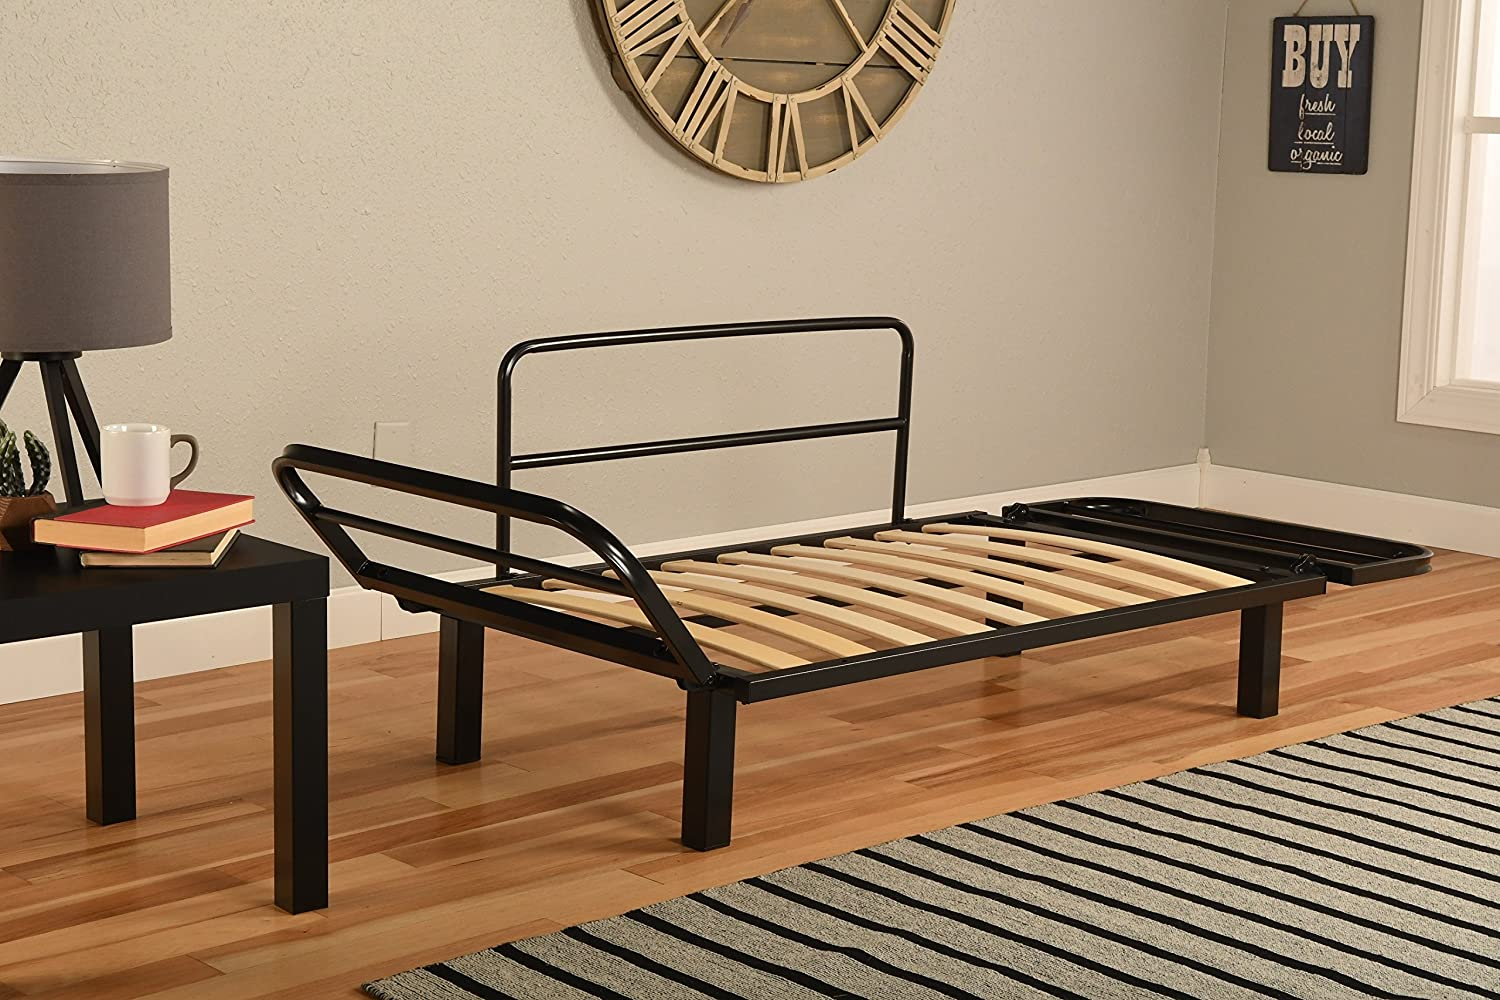 Best Futon Lounger - Frame ONLY - Sit Lounge Sleep - Small Furniture for  College Dorm, Bedroom Studio Apartment Guest Room Covered Patio Porch